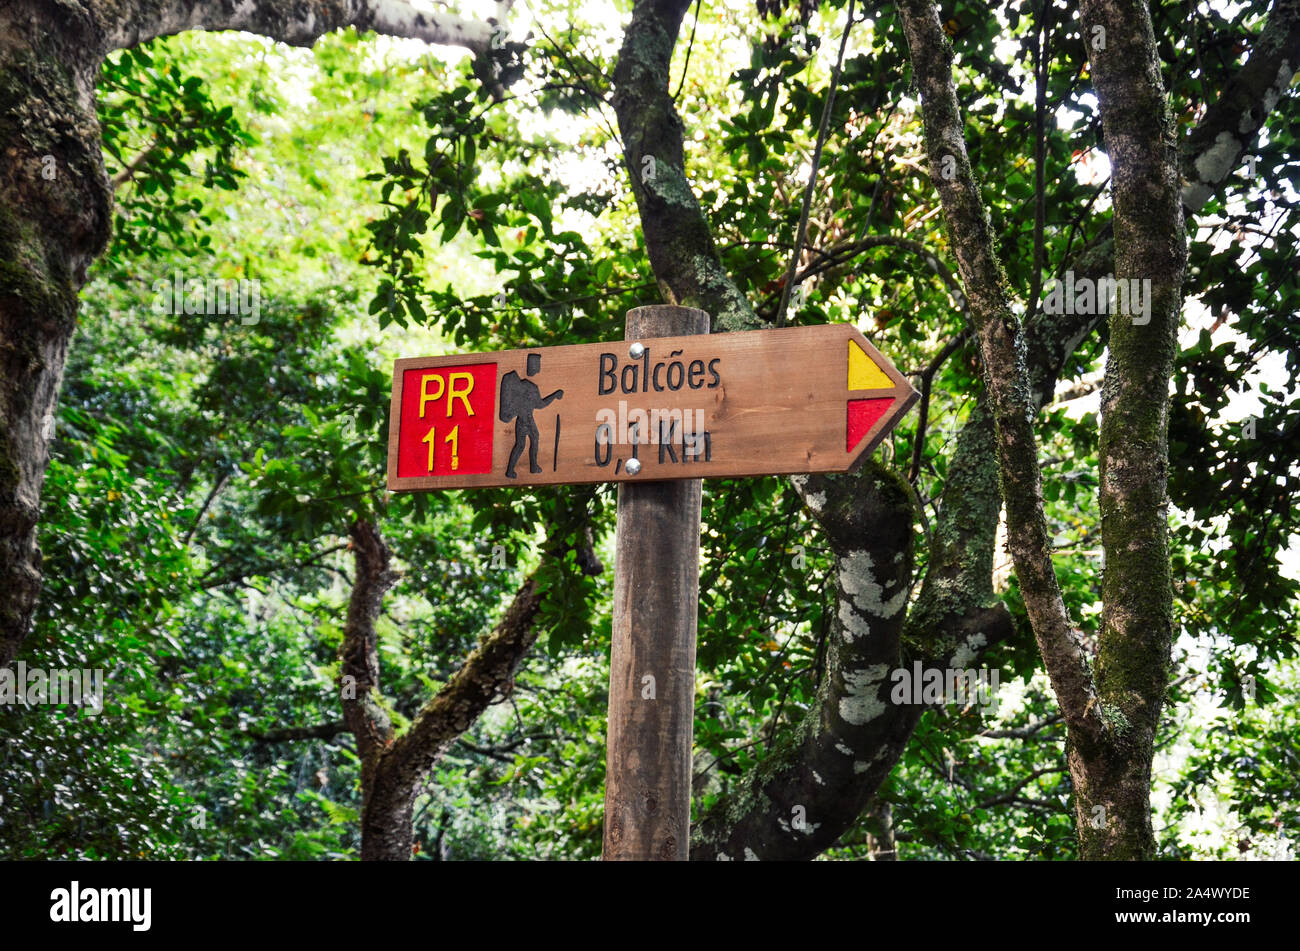 Tourist sign giving distances and directions on the famous Levada dos Balcoes Trail in Madeira, Portugal. Information sign, marking system, marker. Green trees and forest in the background. Stock Photo